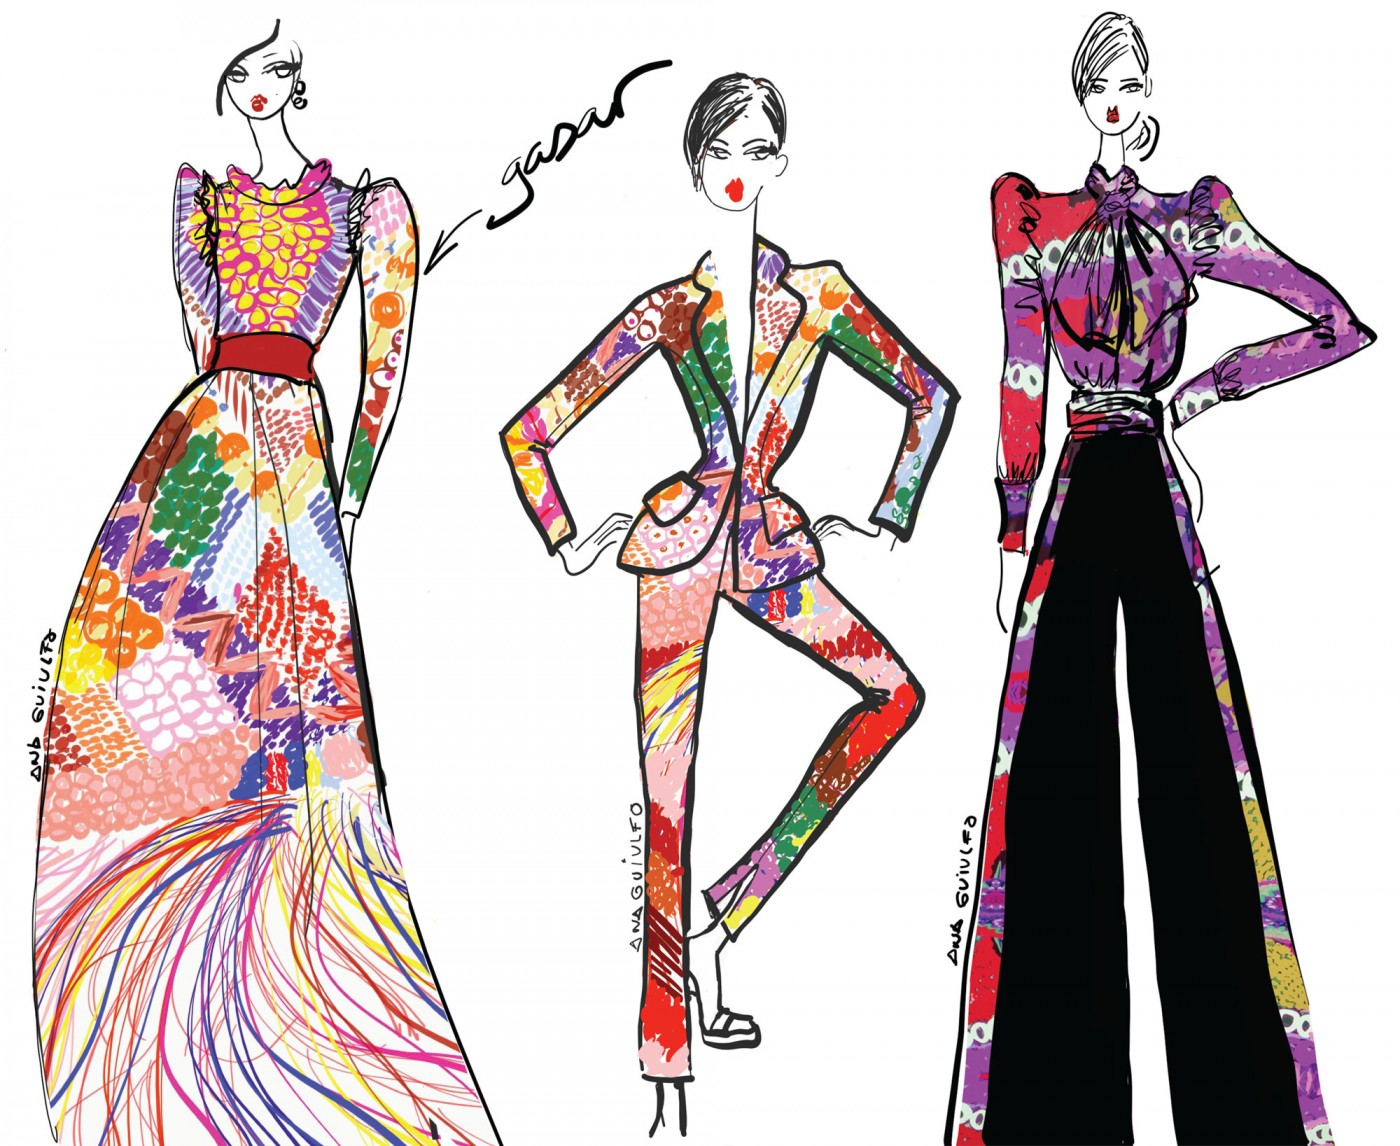 A sketch from designer Ana María Guiulfo for the Epson Digital Couture presentation